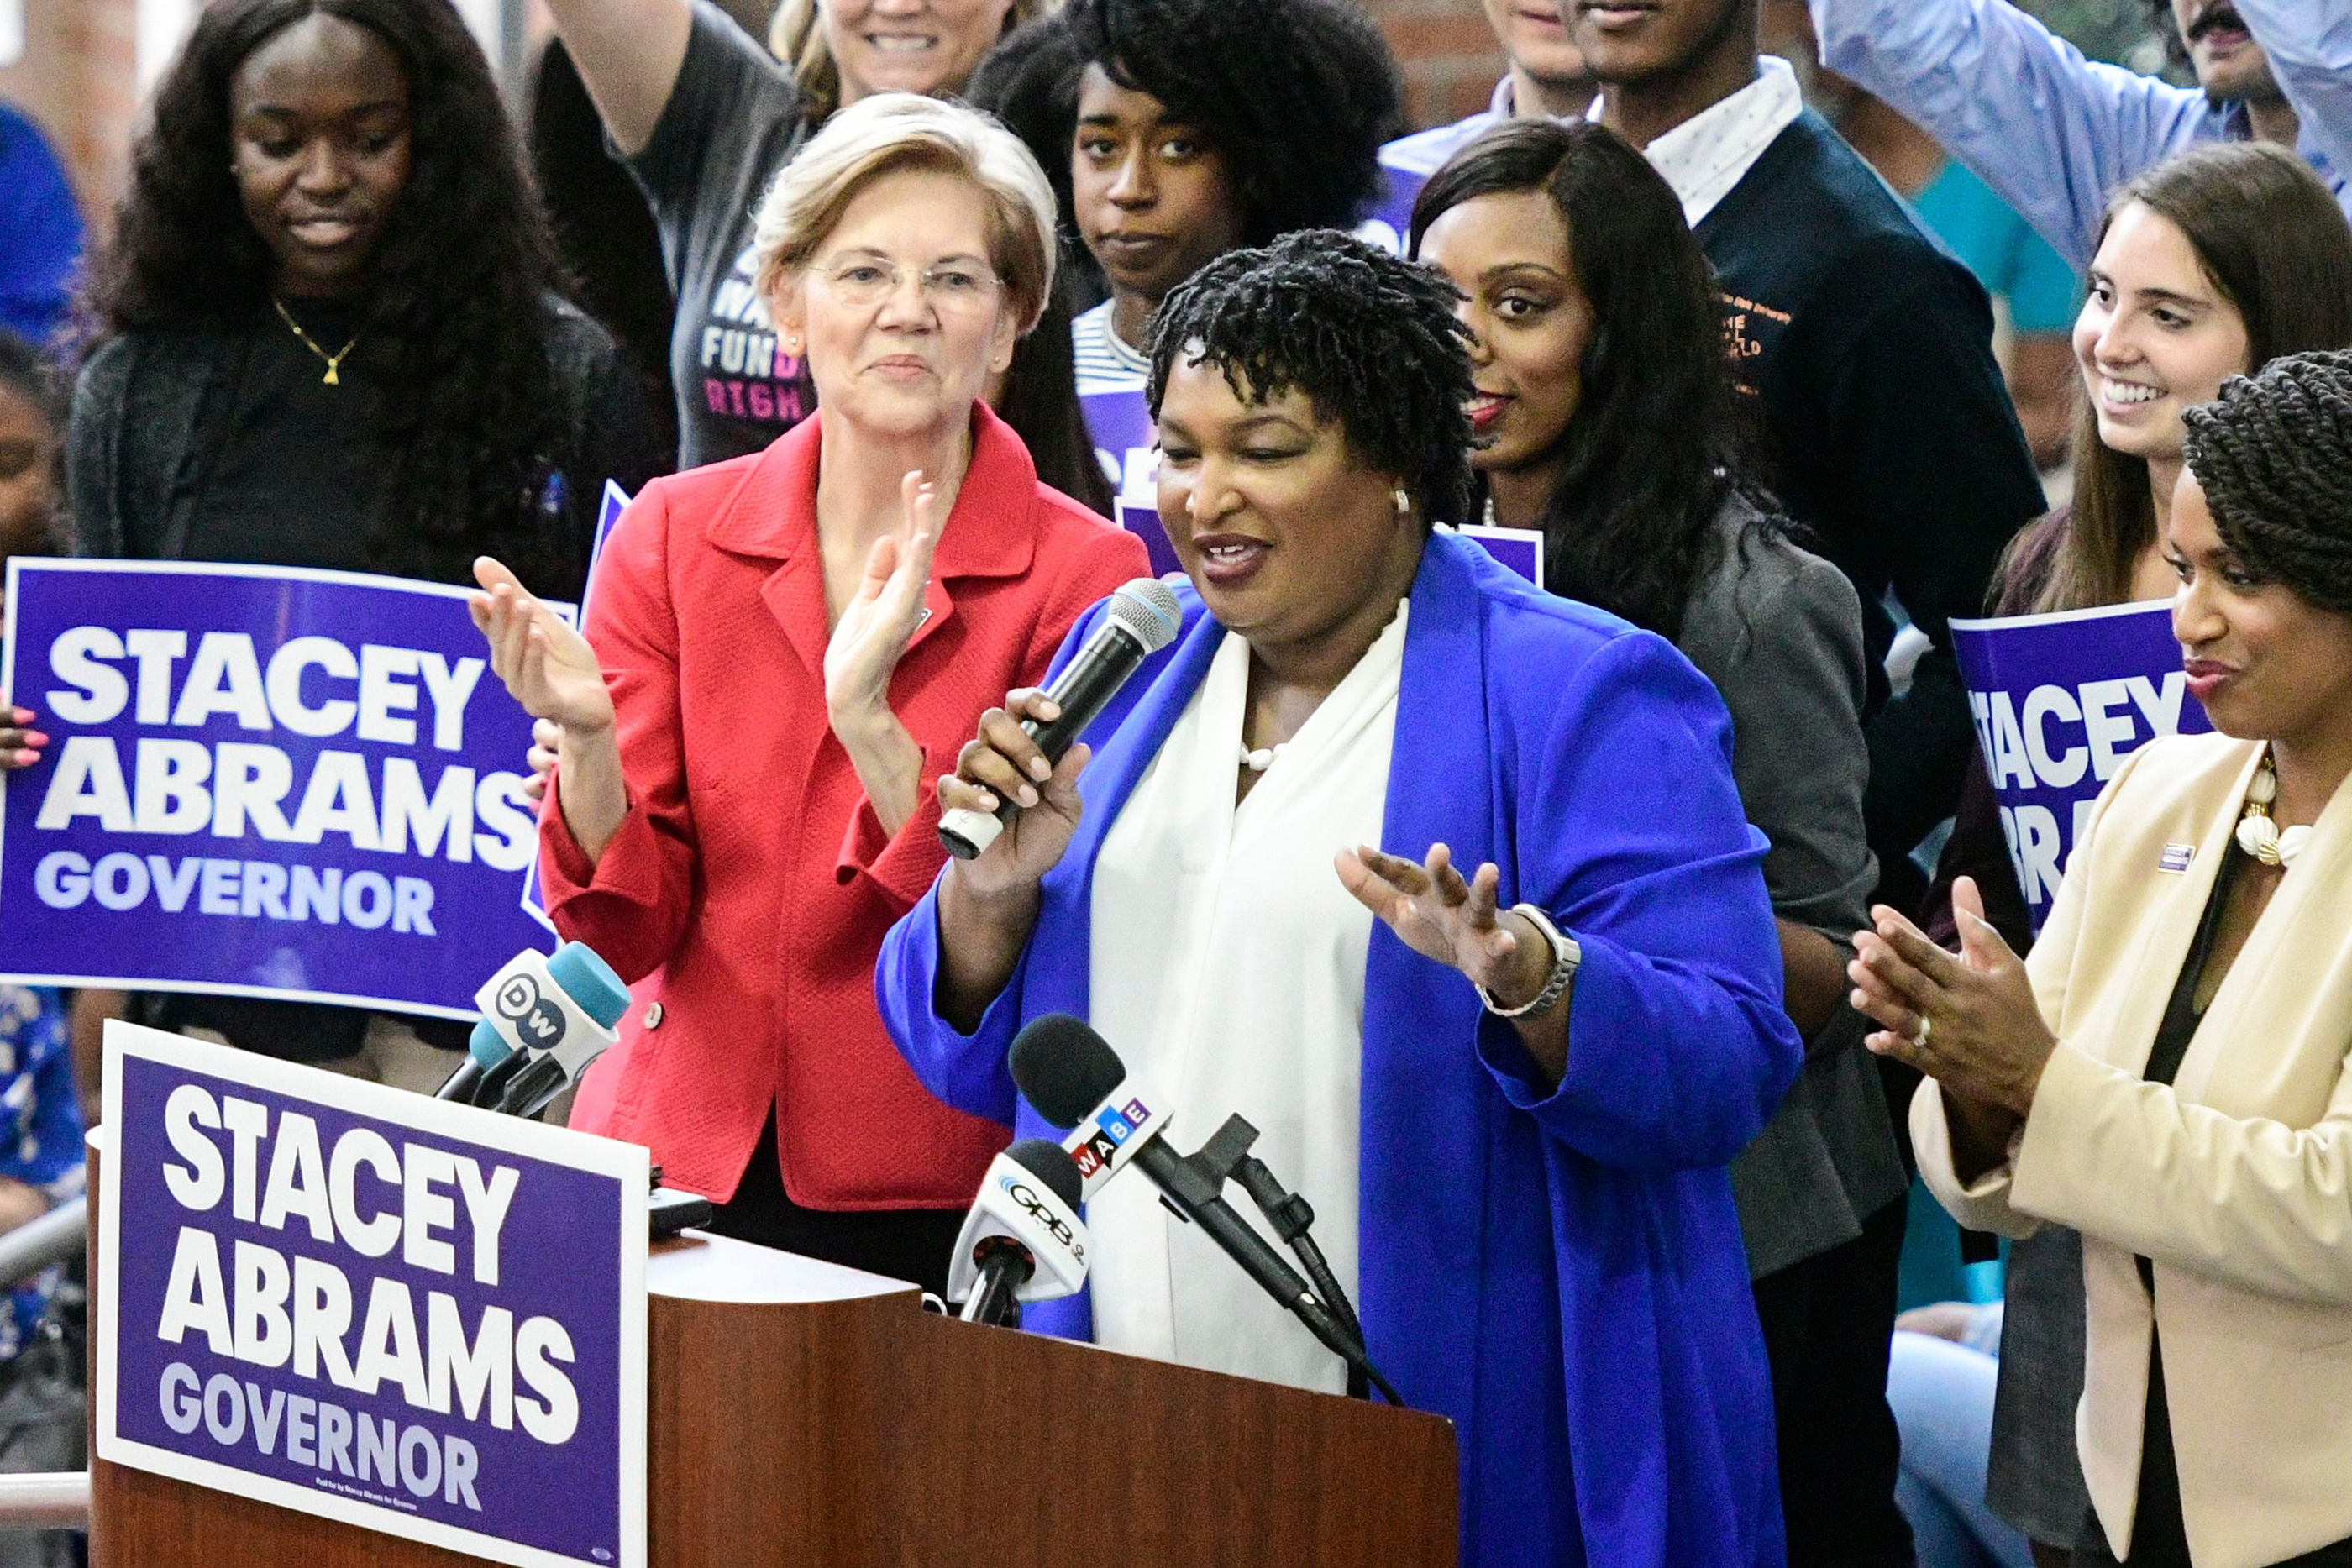 Democratic Georgia gubernatorial nominee Stacey Abrams (C) speaks to supporters while flanked by Boston City Council woman Ayanna Pressley (R) and Democratic Senator from Massachusetts Elizabeth Warren during a campaign rally in Morrow, Georgia, USA, October 9, 2018.